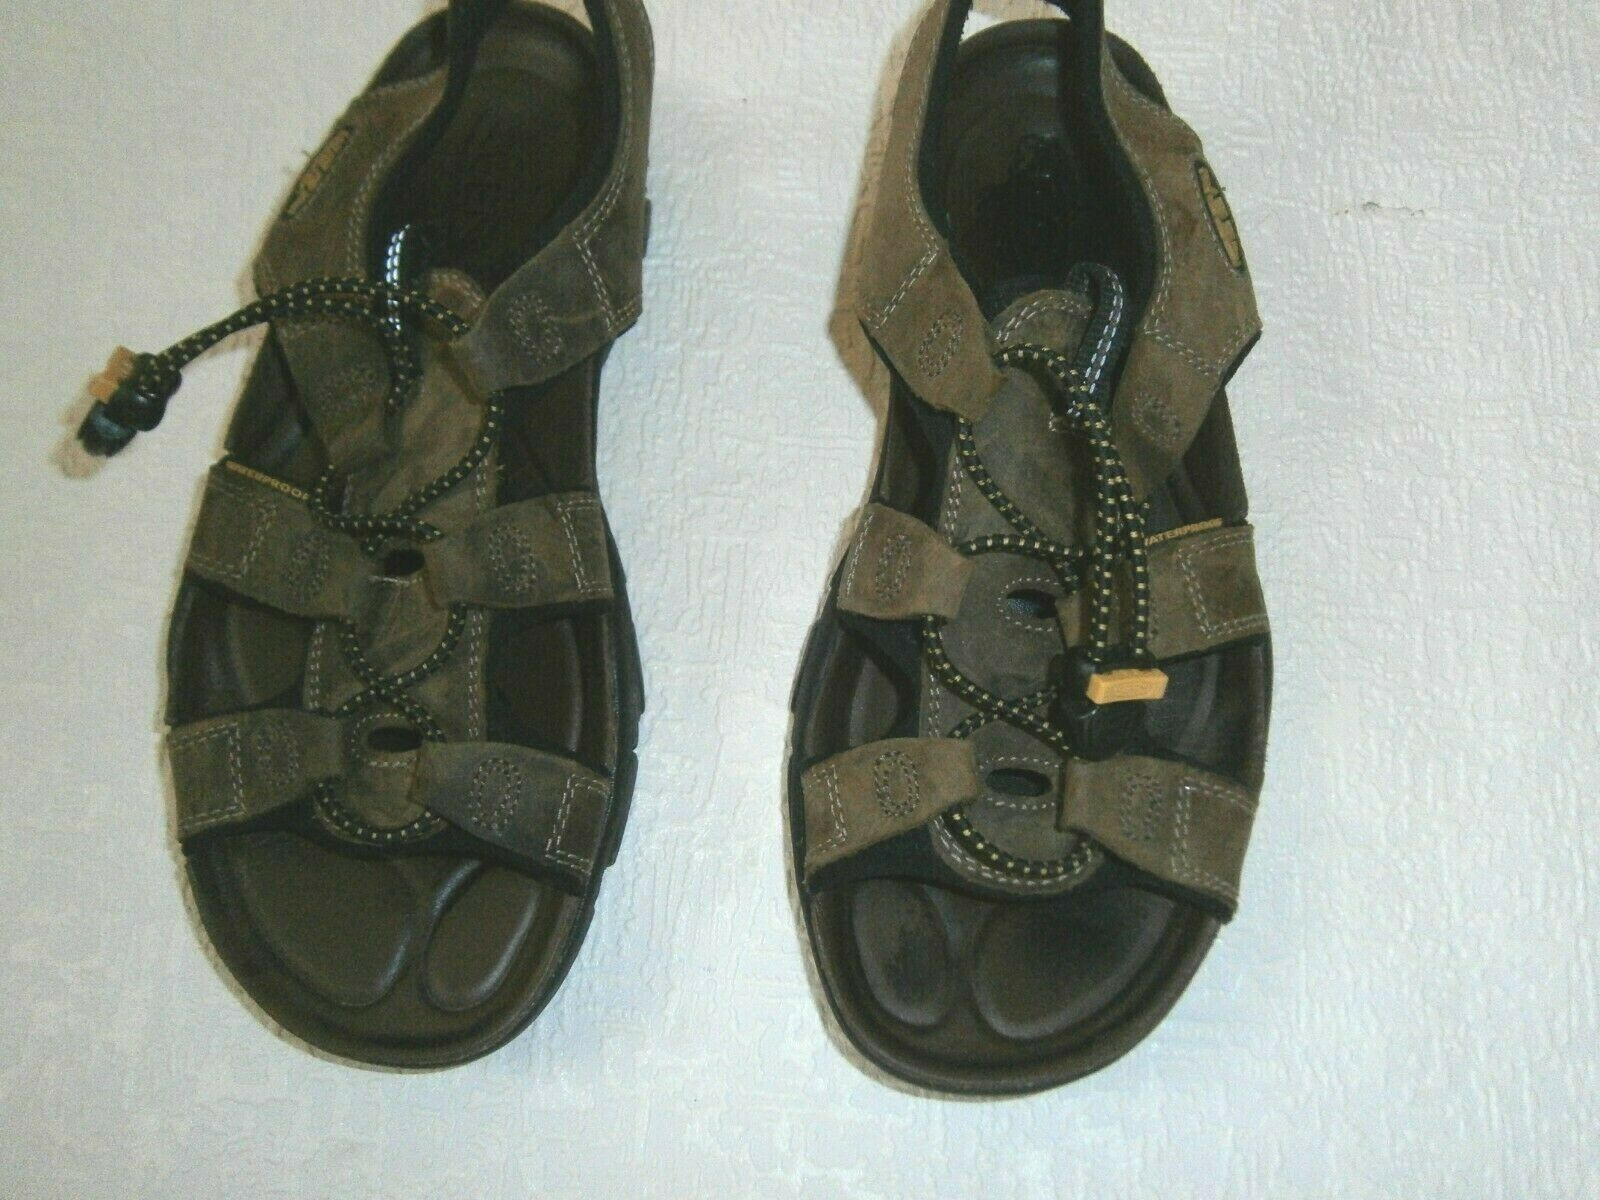 Primary image for Keen Leather Sandals Women's Hiking Size 8 1/2